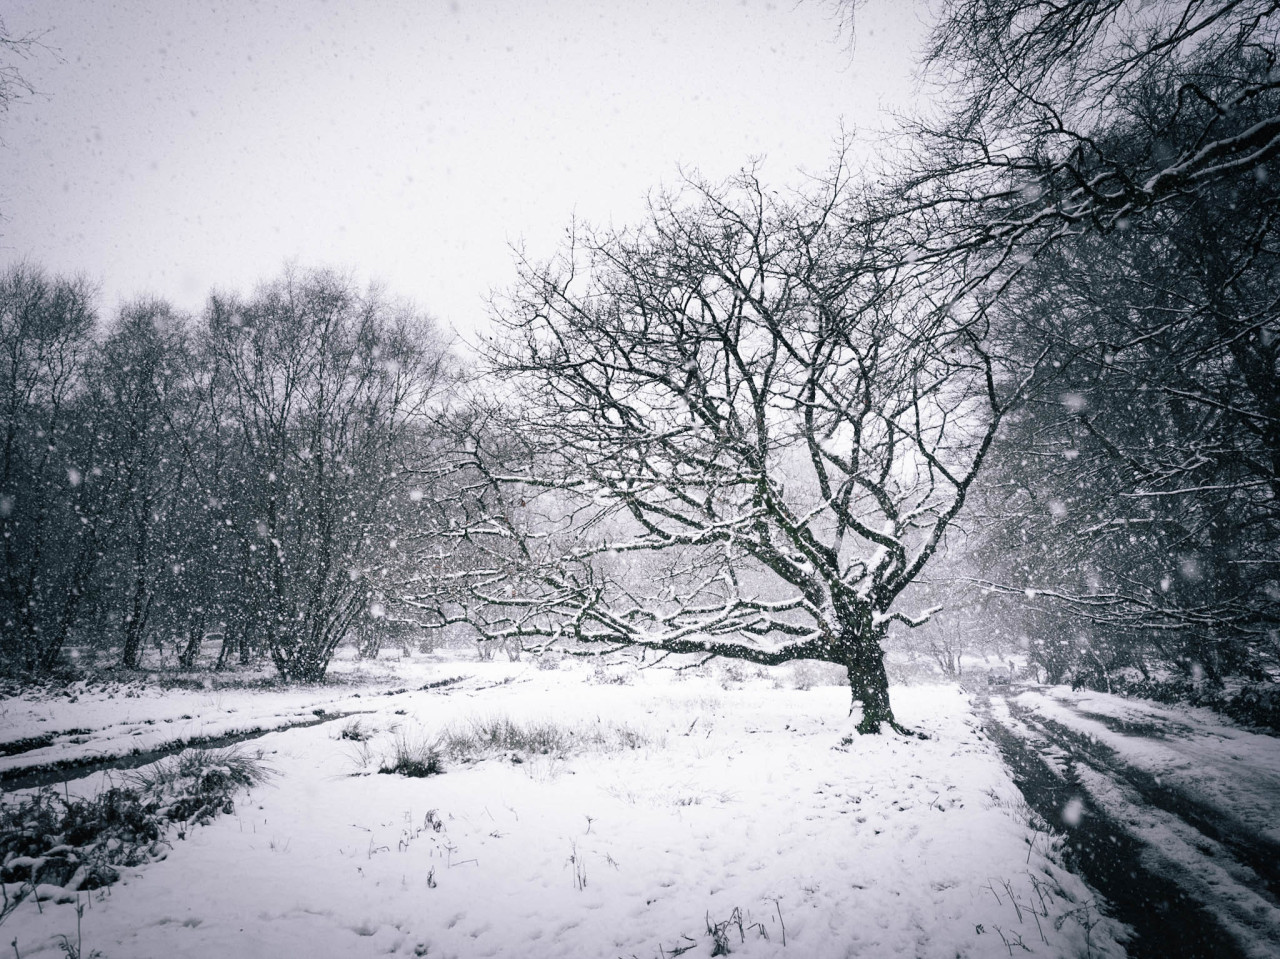 Snowscape, Somerset Photographed by Freddie Ardley #landscape #photographers on tumblr #photography#photographer #artists on tumblr #original photographers#nature#snow#weather#beauty#winter#mountains#story#lit#writing#hasselblad